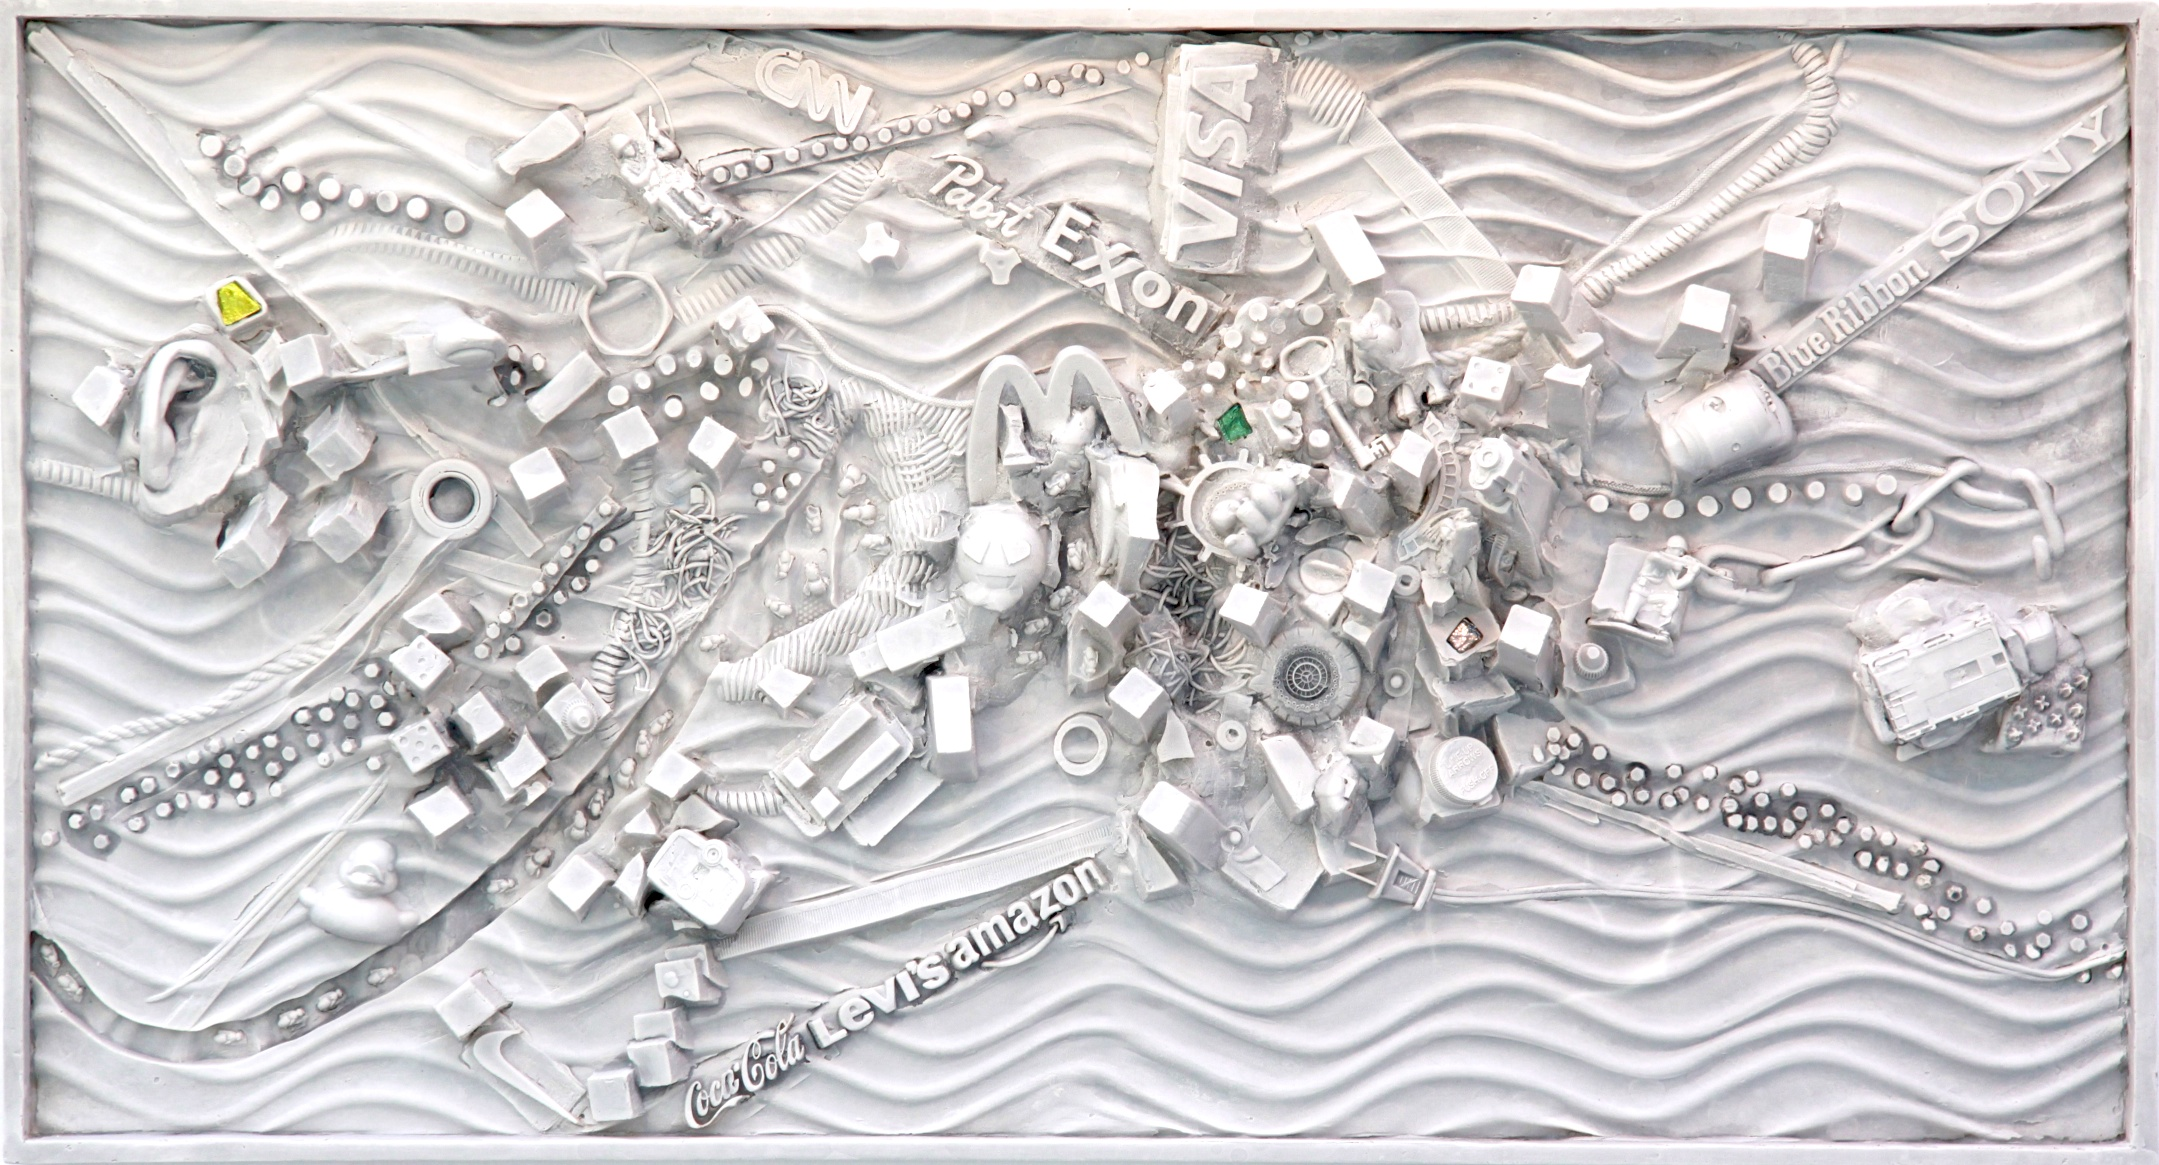 Cscape #48, (Rhizome), 21 x 36, plaster, Carrara marble wall relief, $5,000